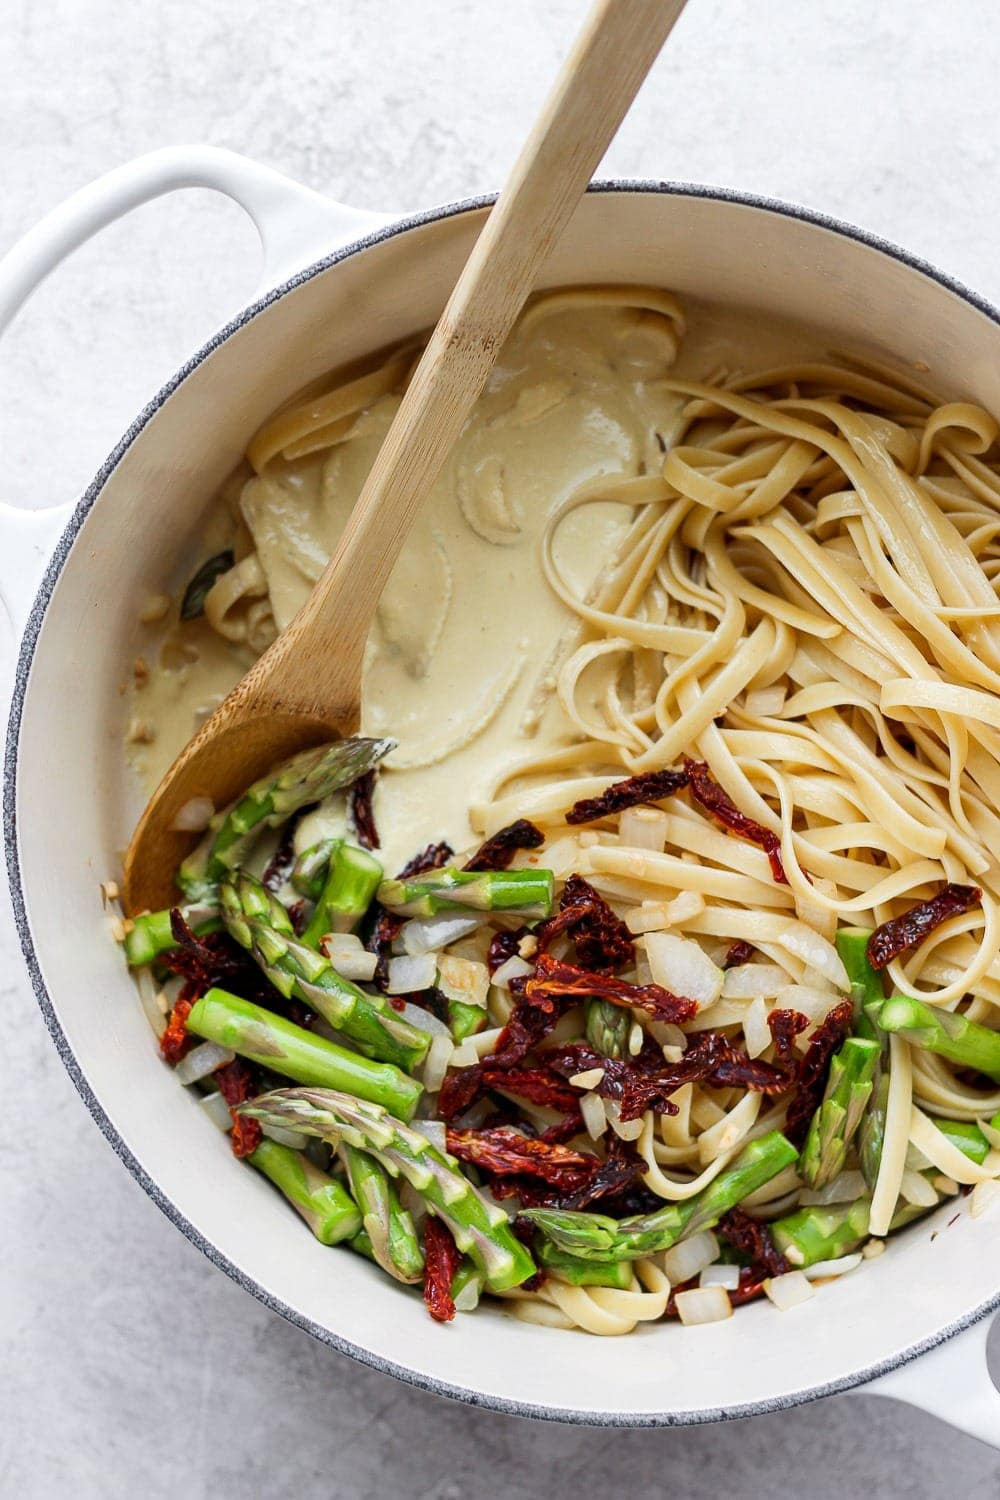 creamy vegan asparagus pasta in a dutch oven ready to be tossed together with veggies and creamy sauce